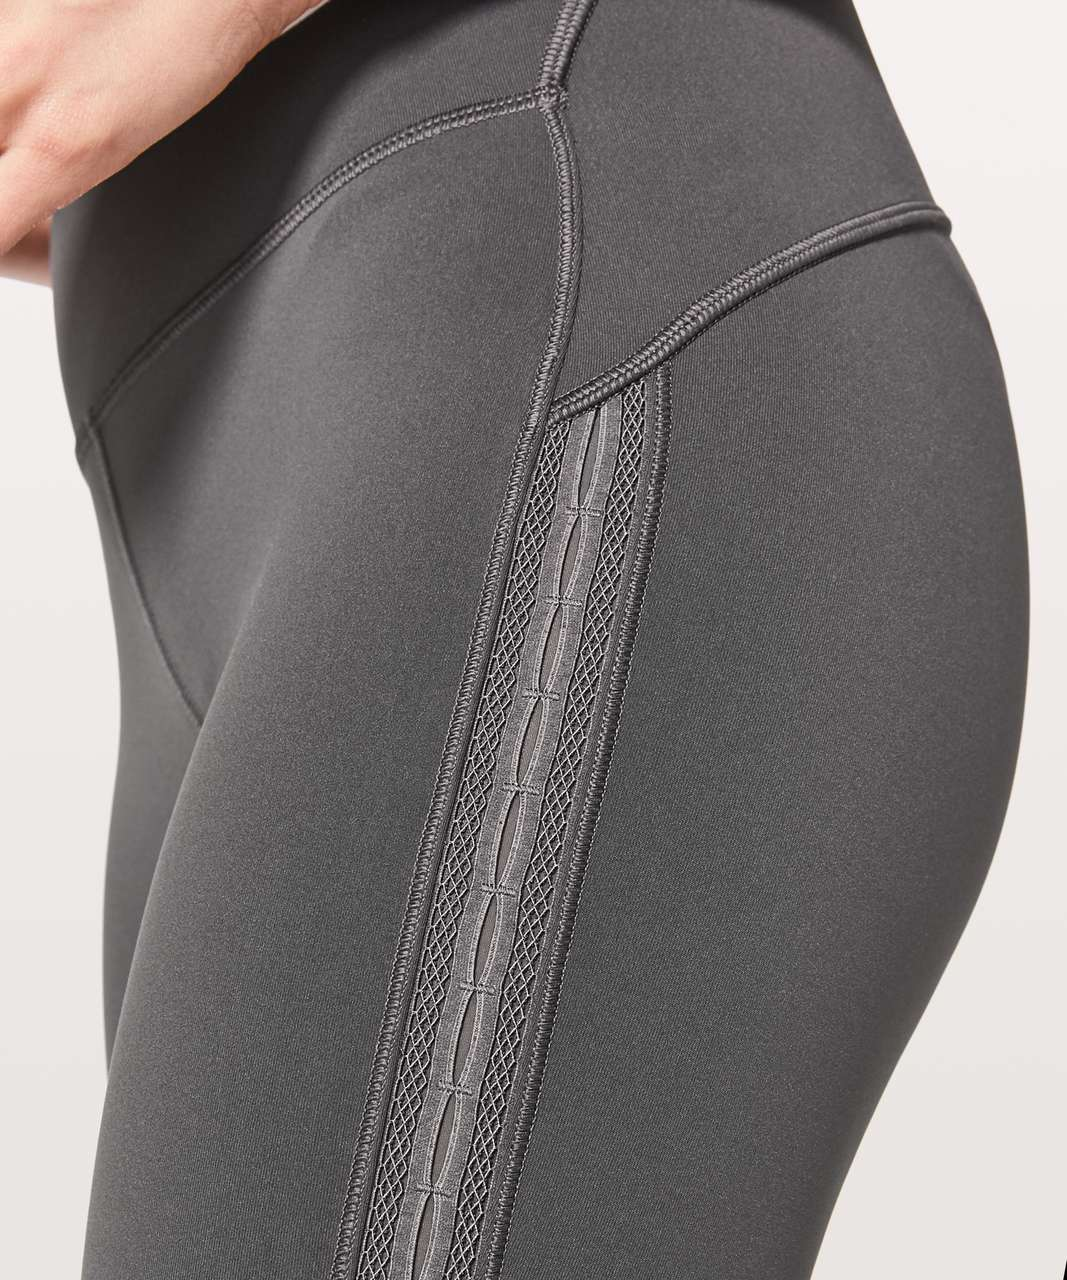 "Lululemon Wunder Under Hi-Rise 7/8 Tight (Awaken) 25"" - Dark Shadow"